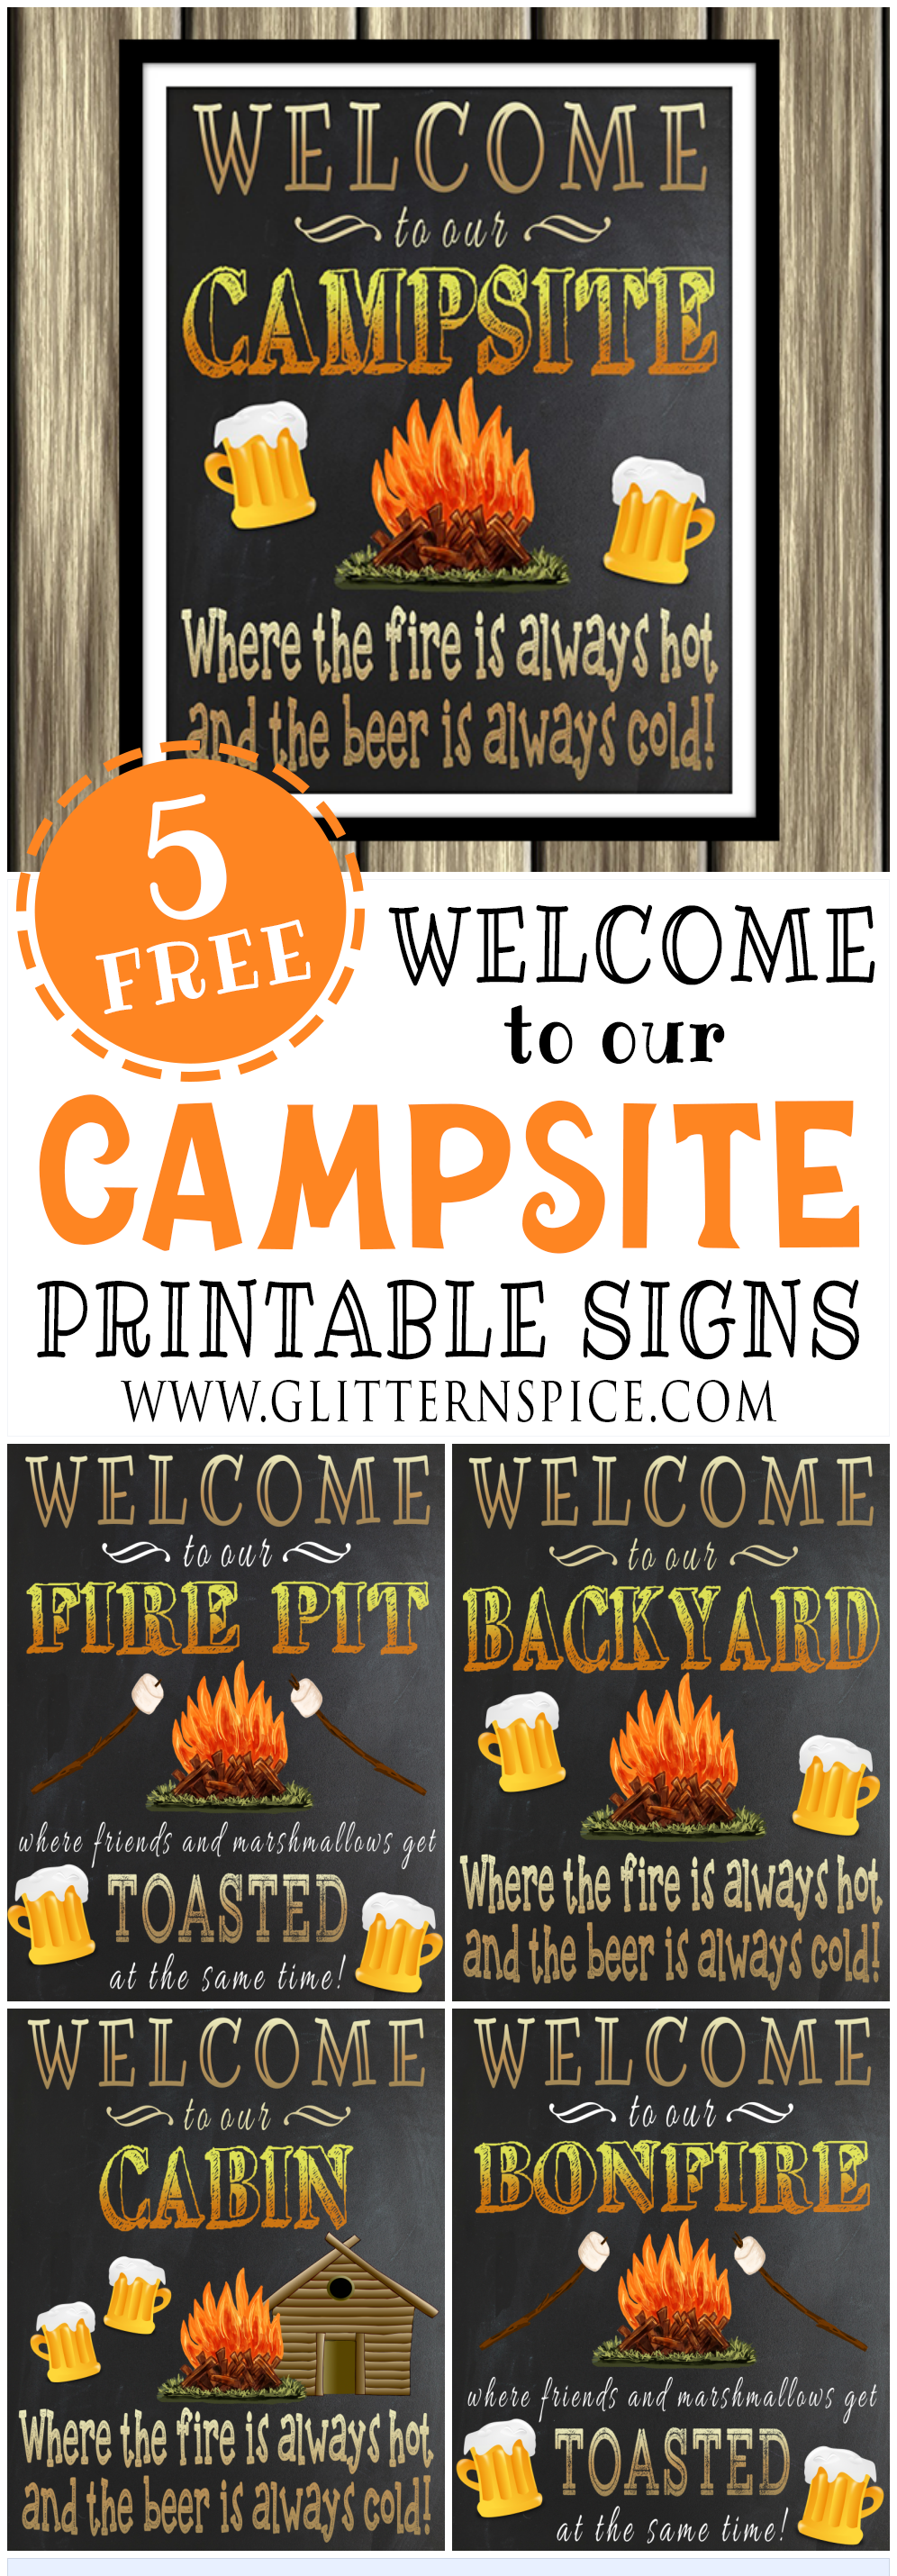 Free Printable Welcome To Our Campsite Sign Plus 4 More Free Printable Outdoor Signs To Choose From